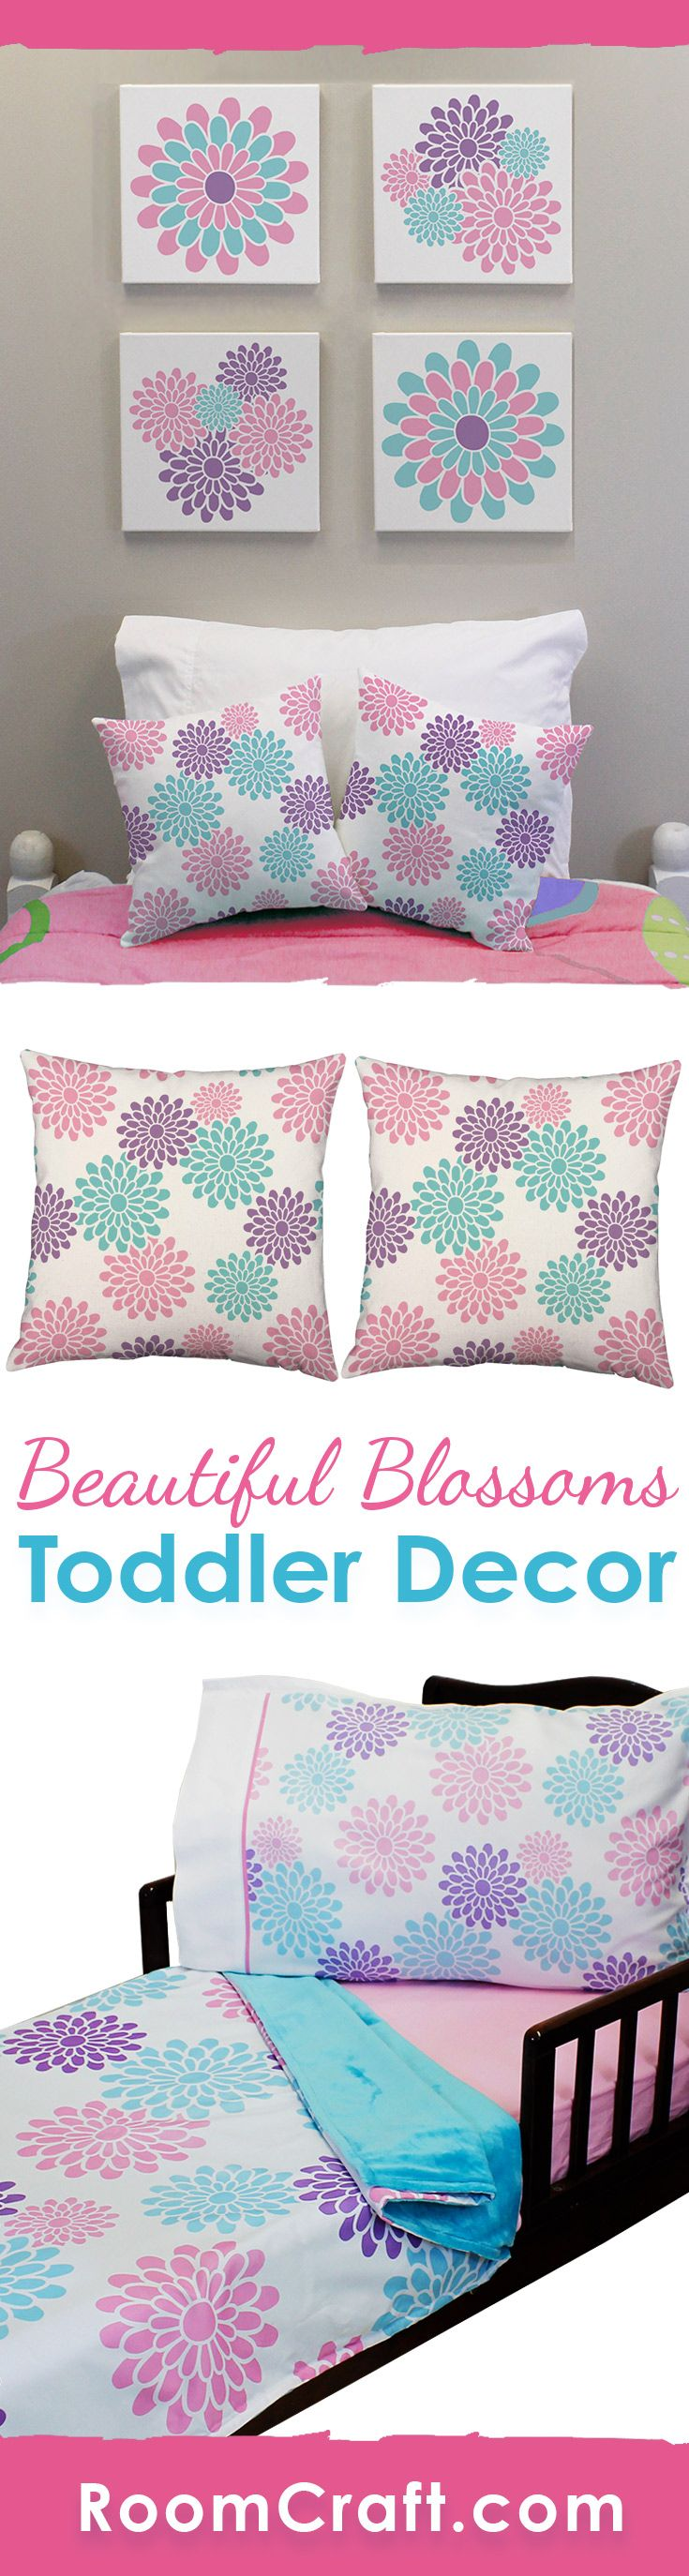 Floral and fun! Brighten up your little girls bedroom with these colorful flower bedding and room decorations. She can cuddle up with the super soft minky blanket on her coordinating fitted sheet and pillowcase. The cute throw pillows are perfect for her to relax against in a window seat or reading corner. And complete the look with some adorable wall art canvases. Our Beautiful Blossoms toddler collection makes decorating fun and easy! #roomcraft